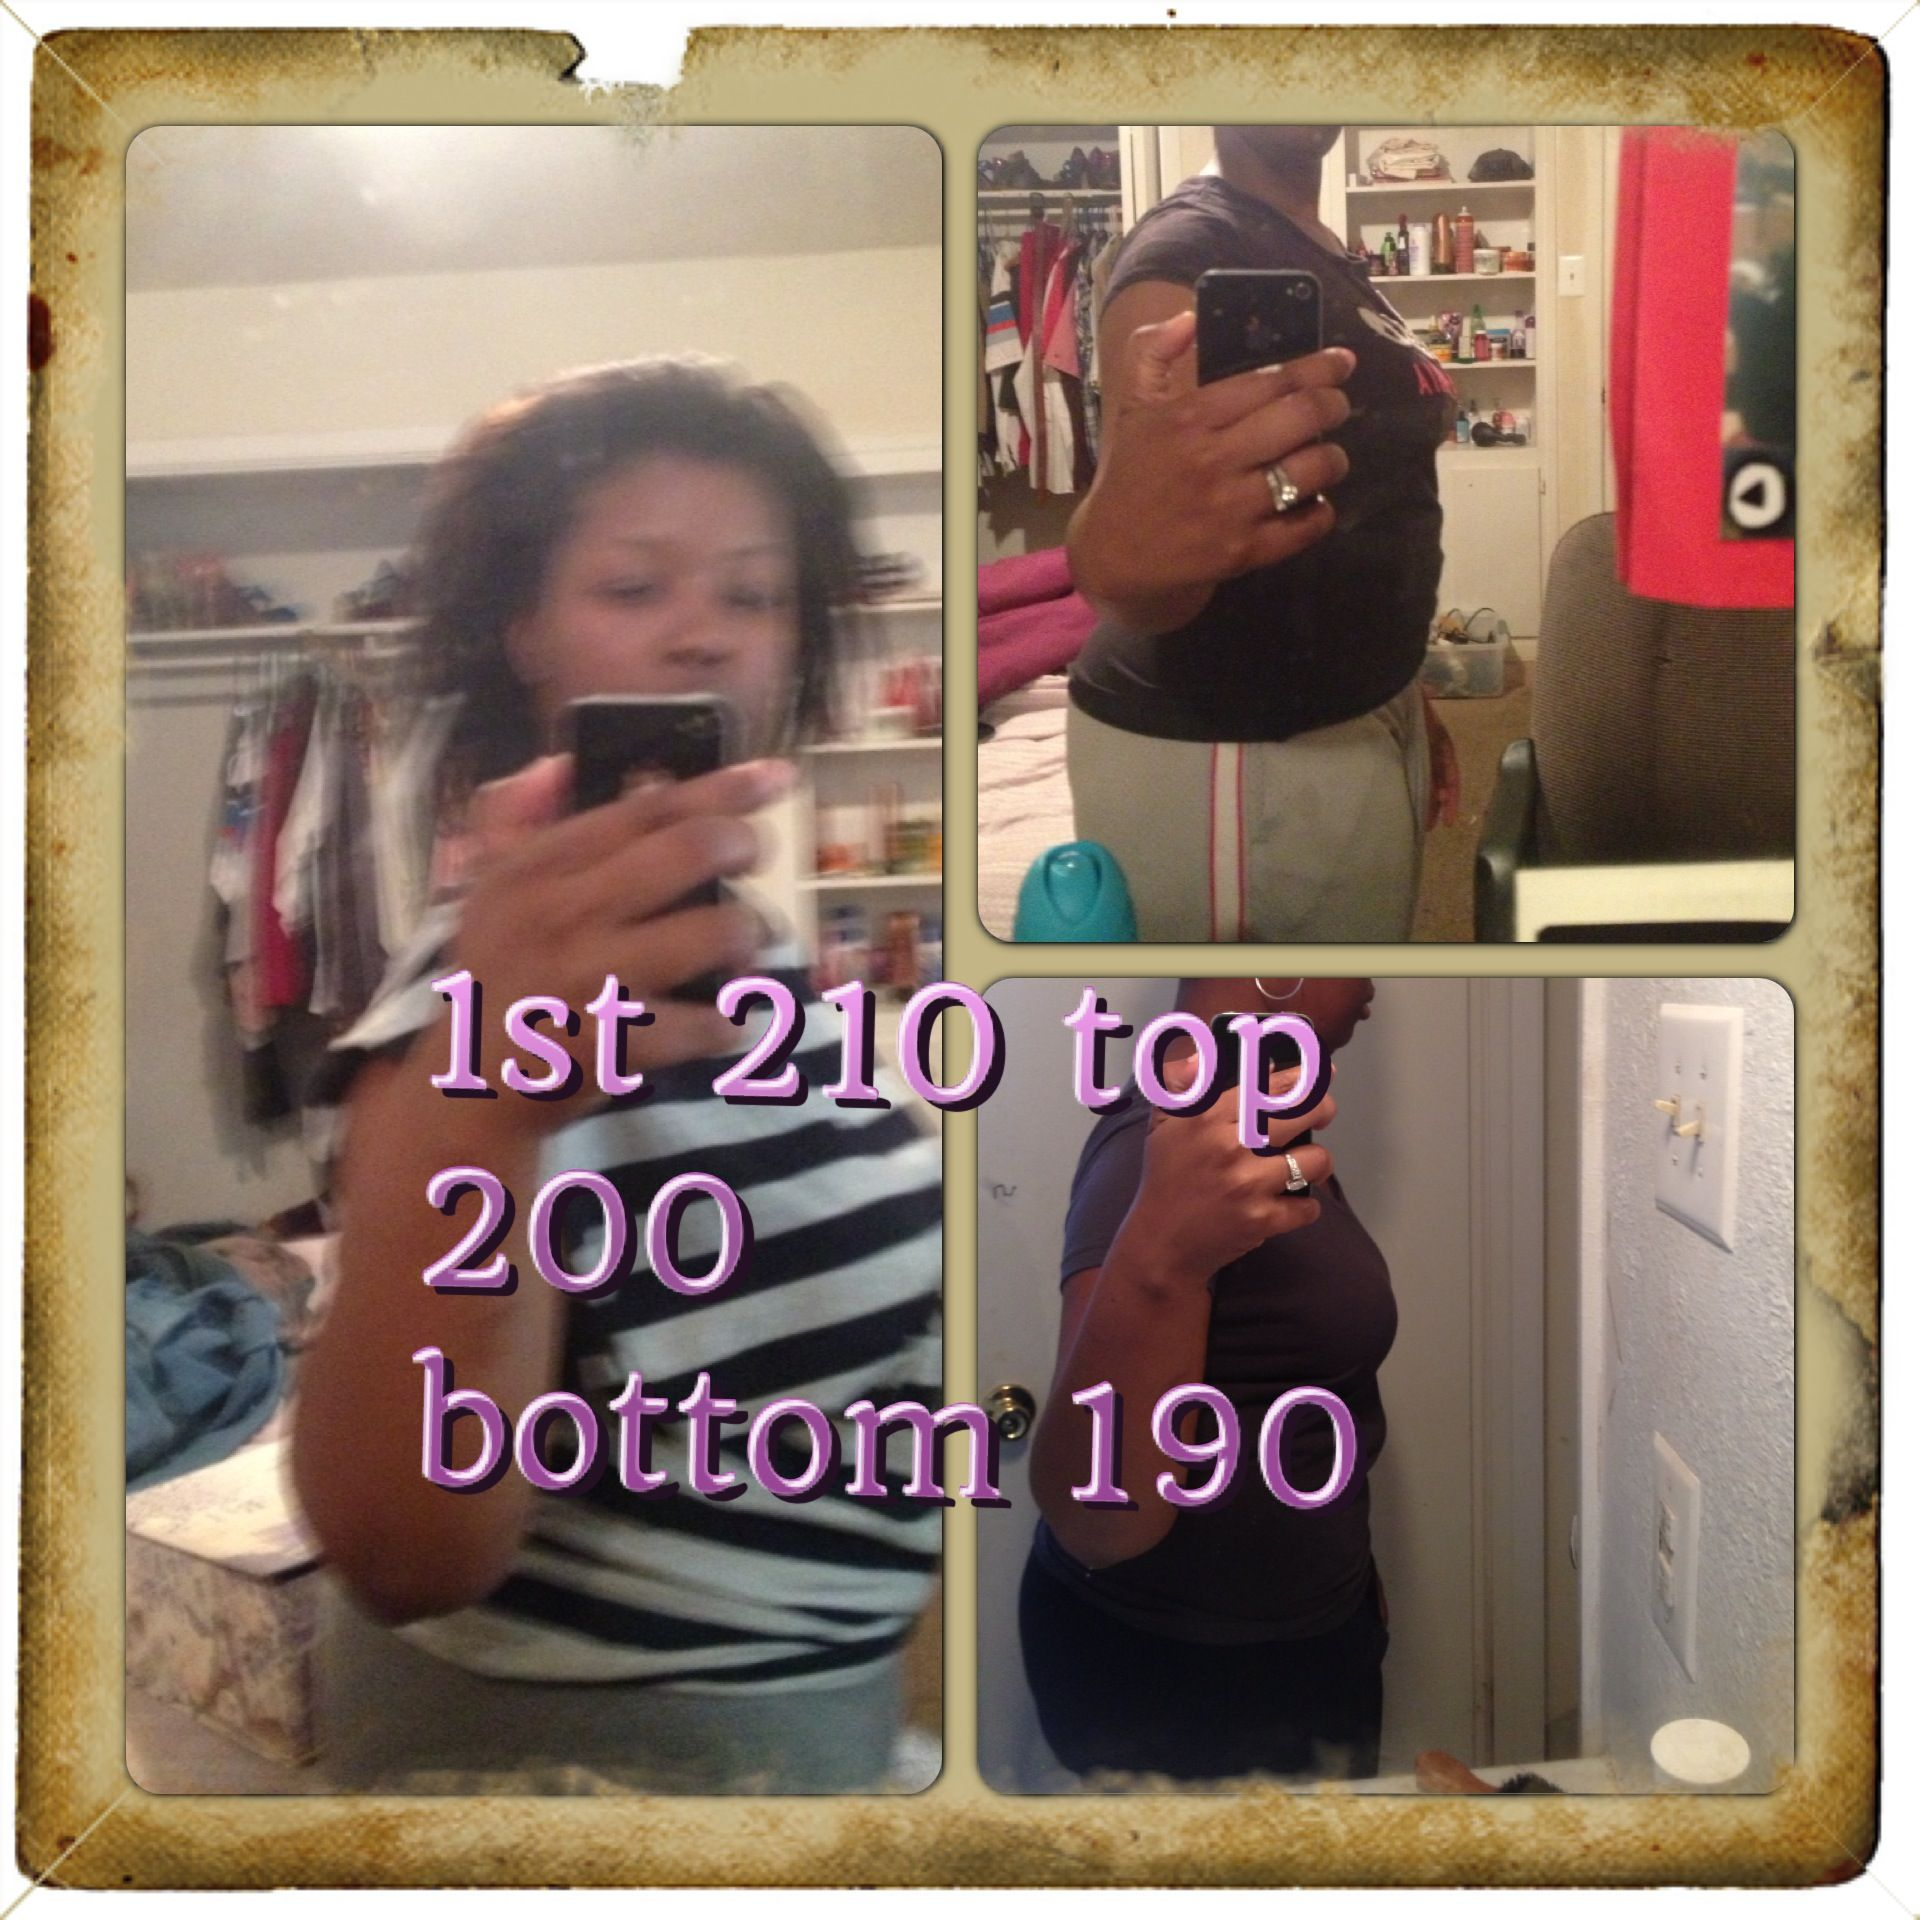 In May i started out at 210 and then by june 200 and then july/august 190 i have to look at these pictures when im tempting to eat the wrong things.